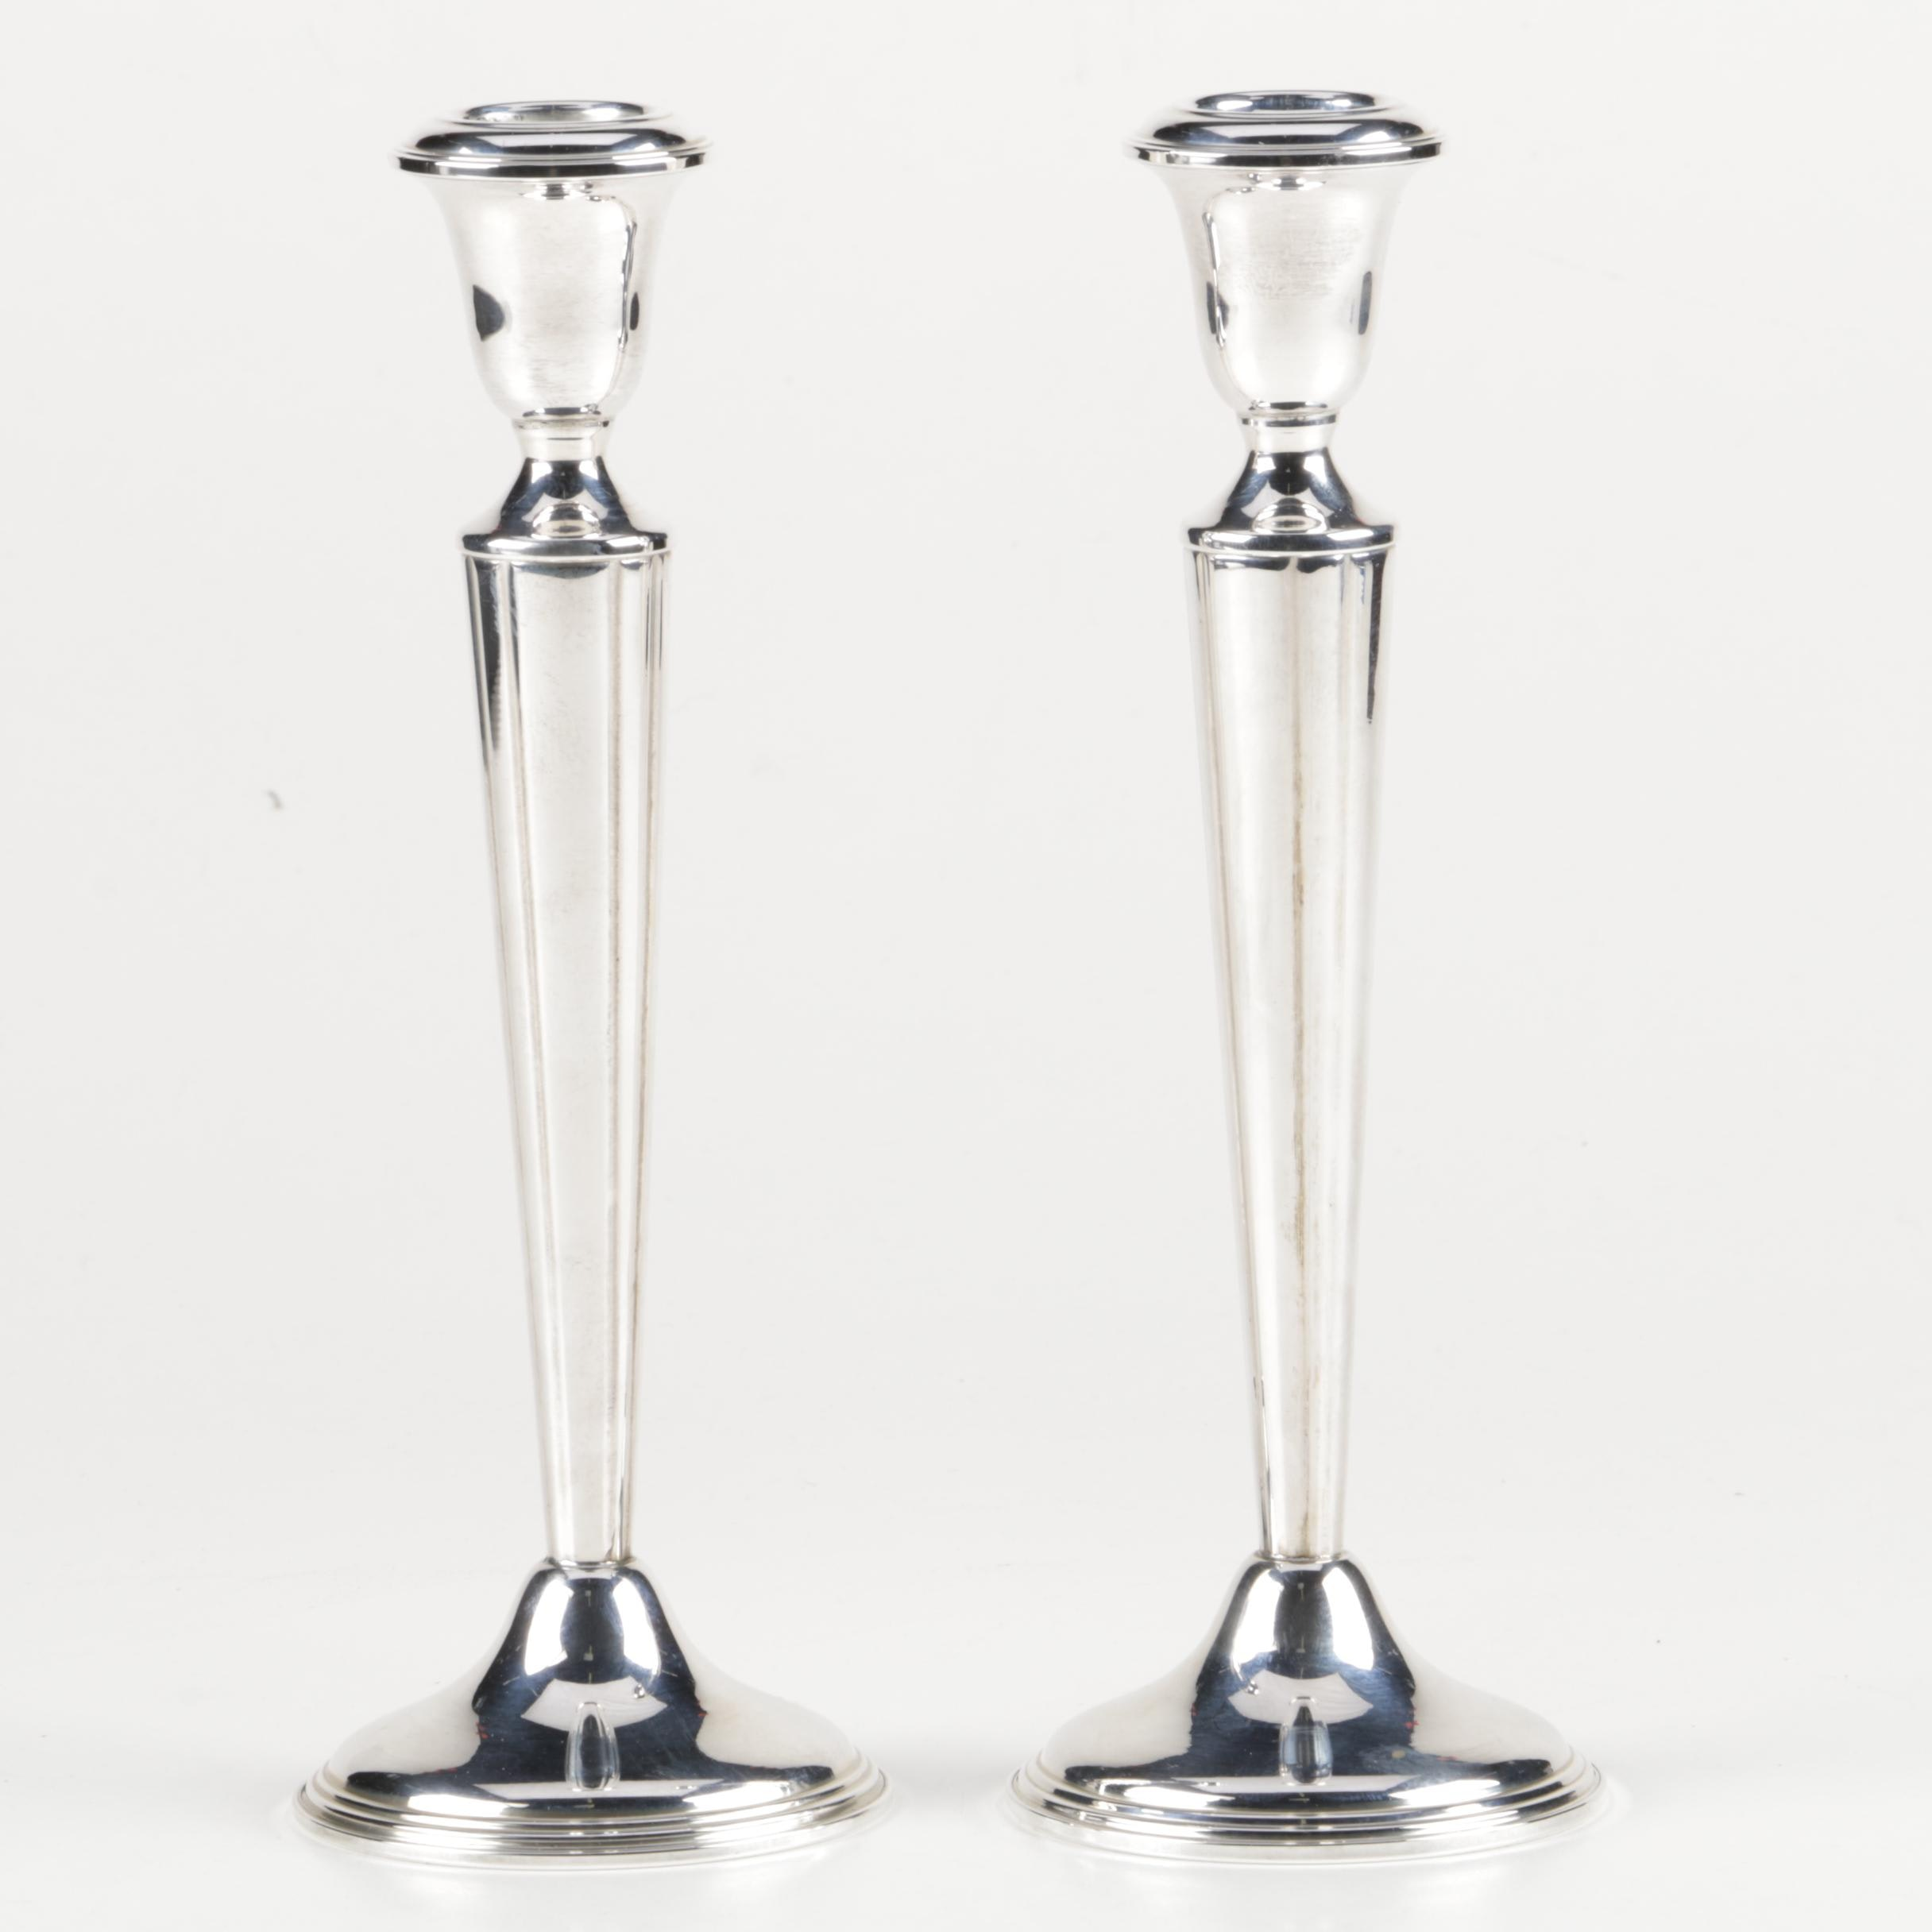 B. Altman's Weighted Sterling Silver Candleholders